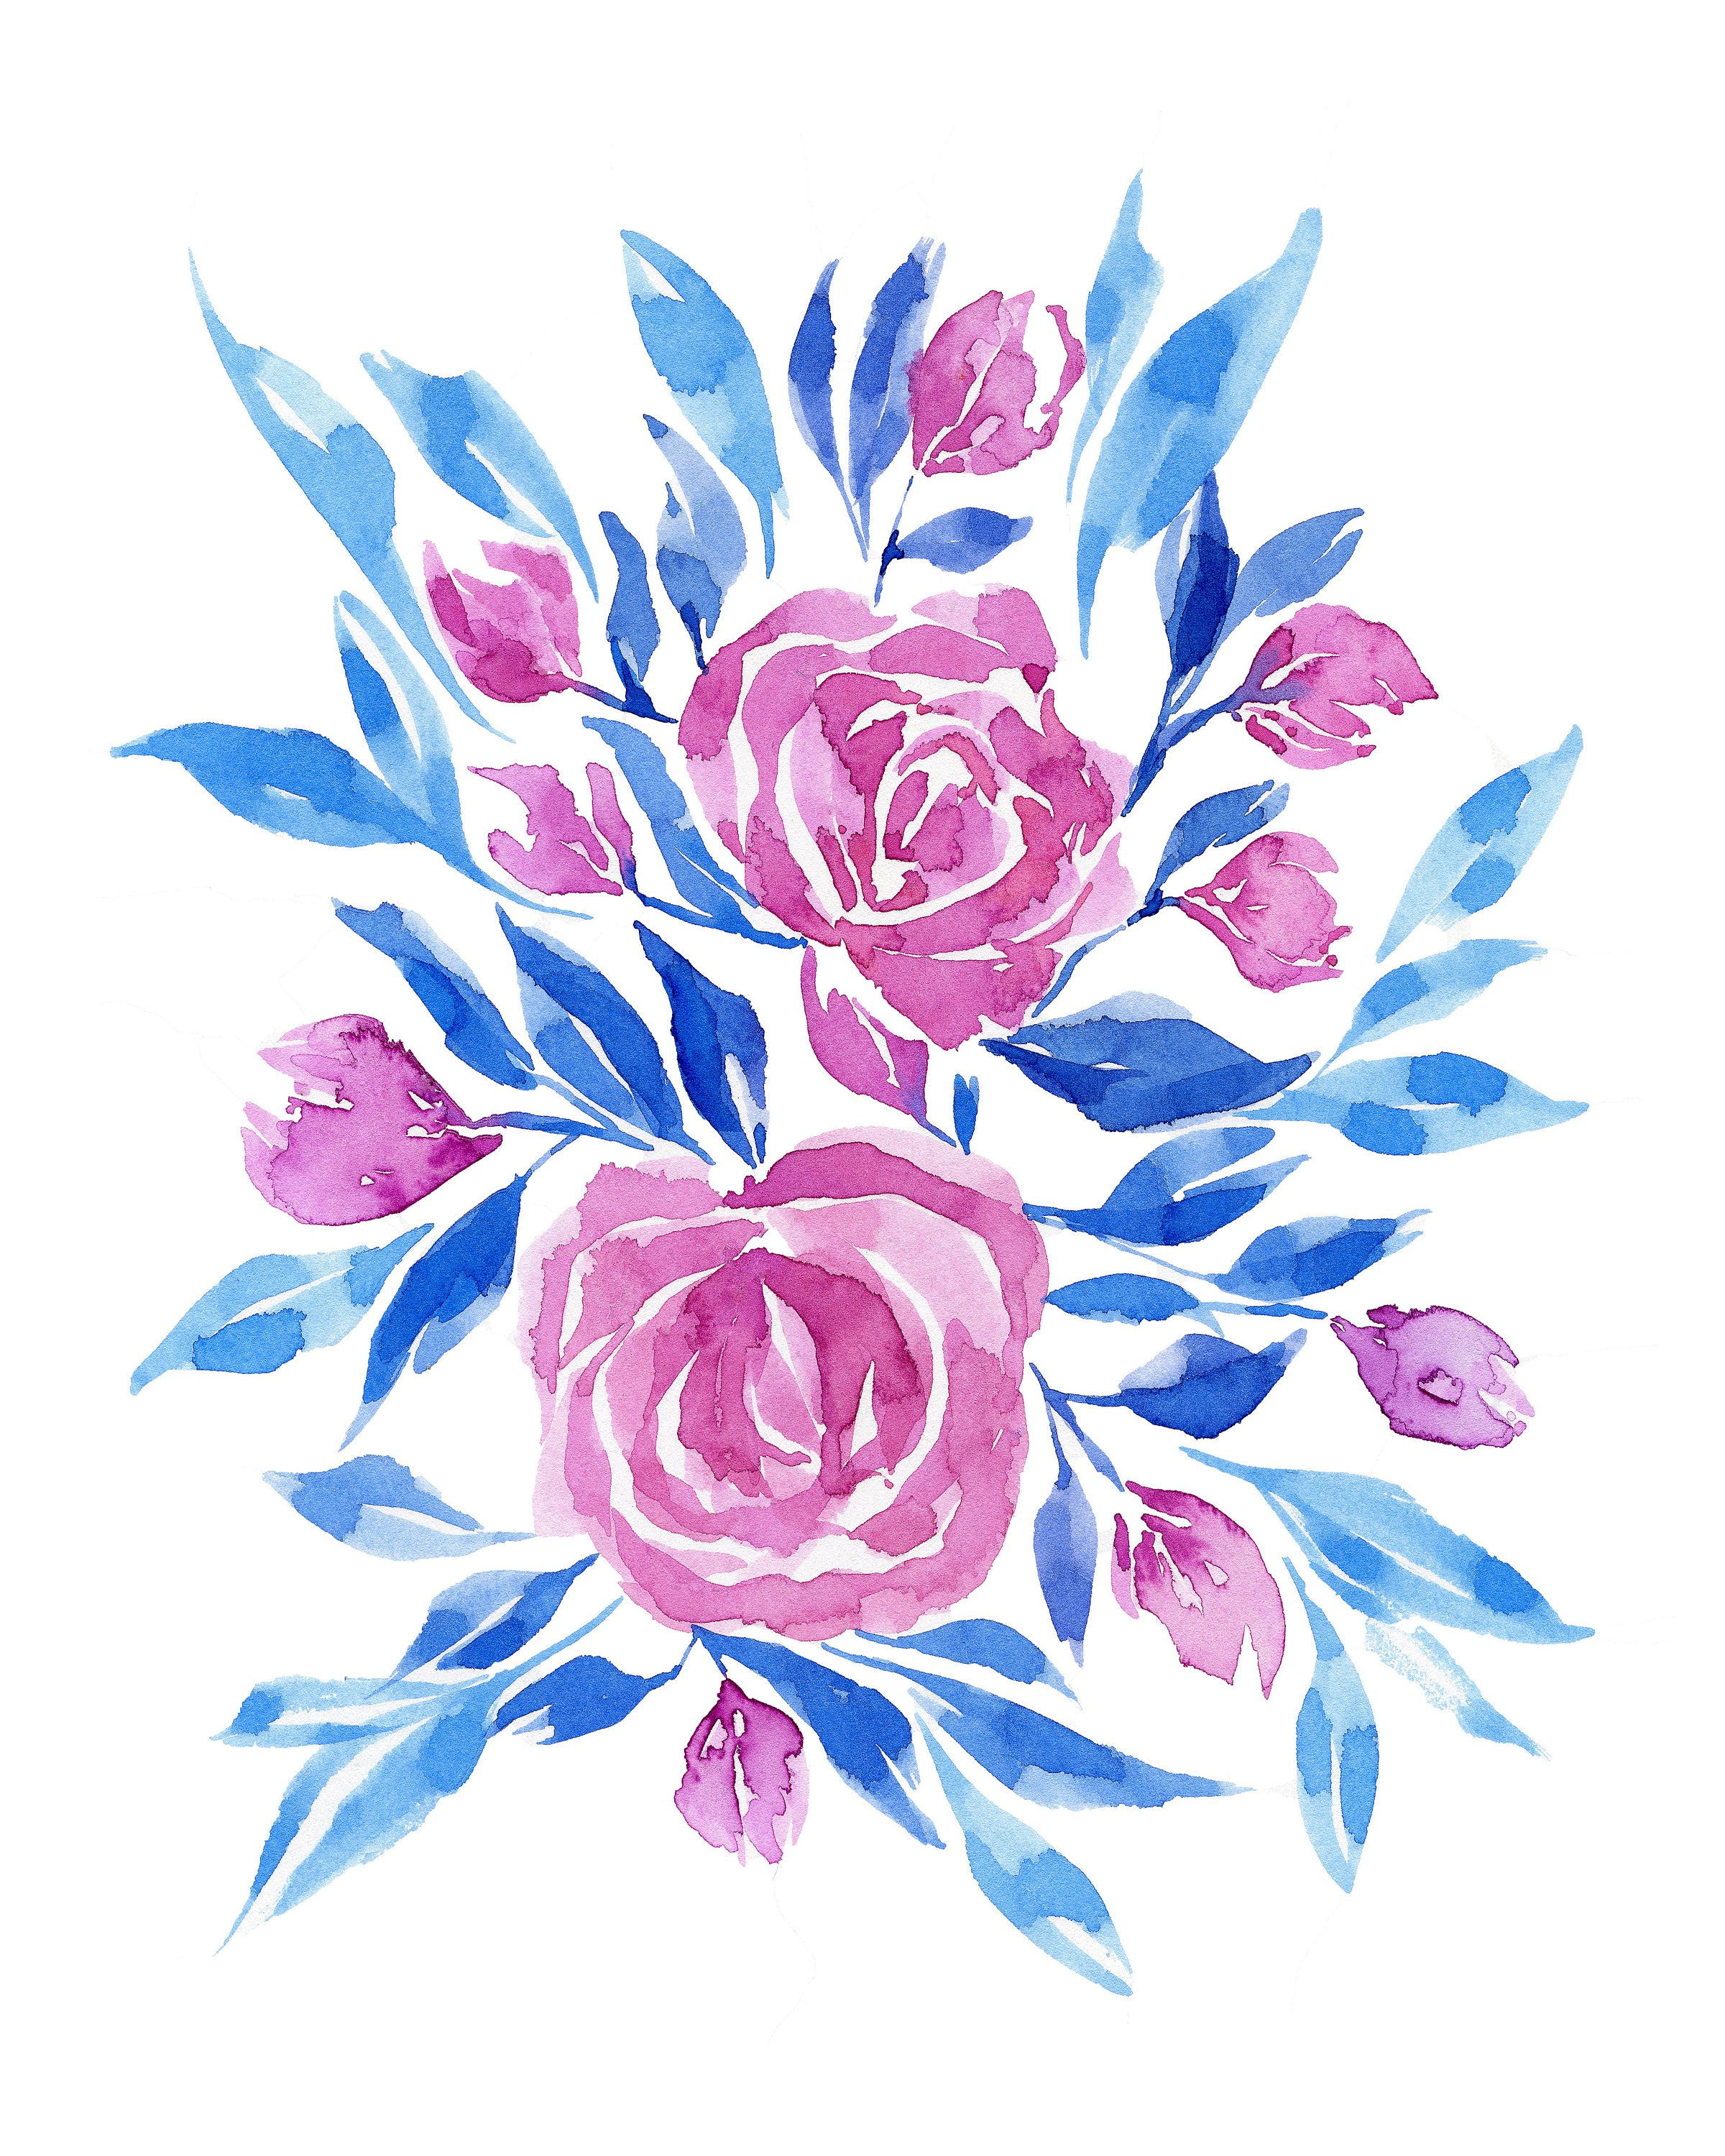 2400x3000 Blue And Pink Floral Watercolor Print No.11, Watercolor Floral Art